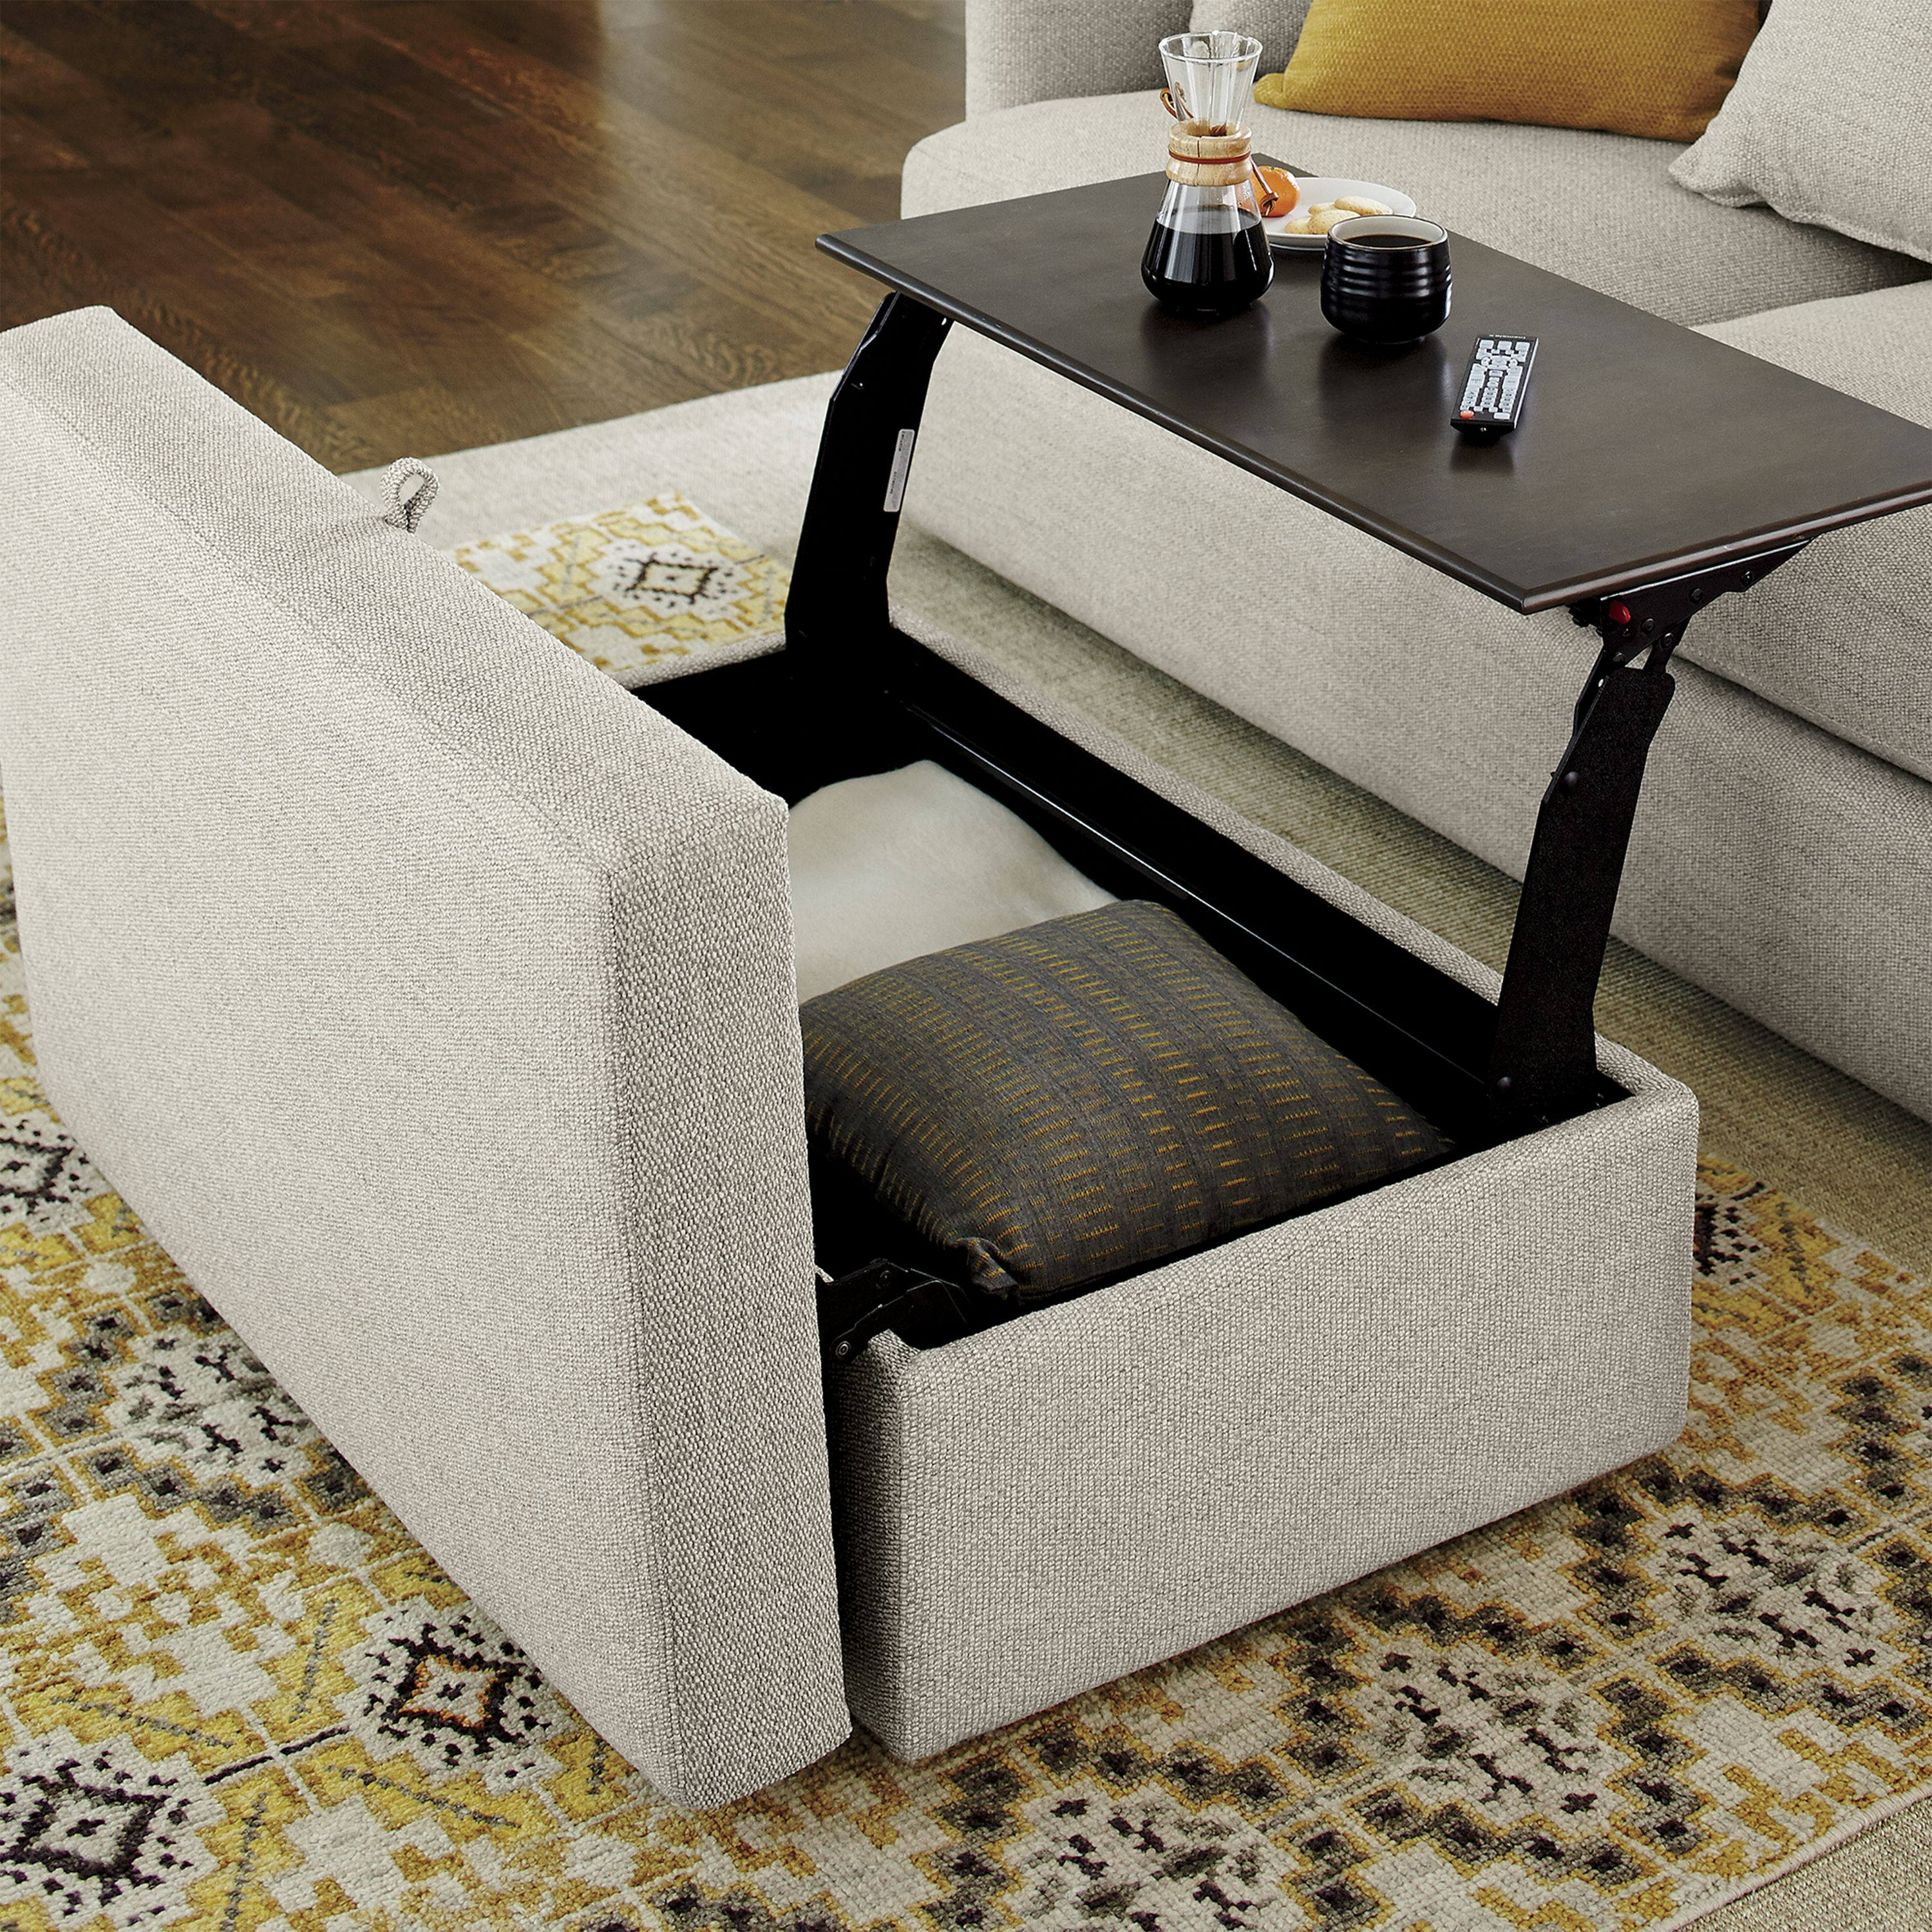 Coffee Tables With Ottomans That Pull Out There 39s A Reason It 39s Called Lounge This Ottoman Part Of